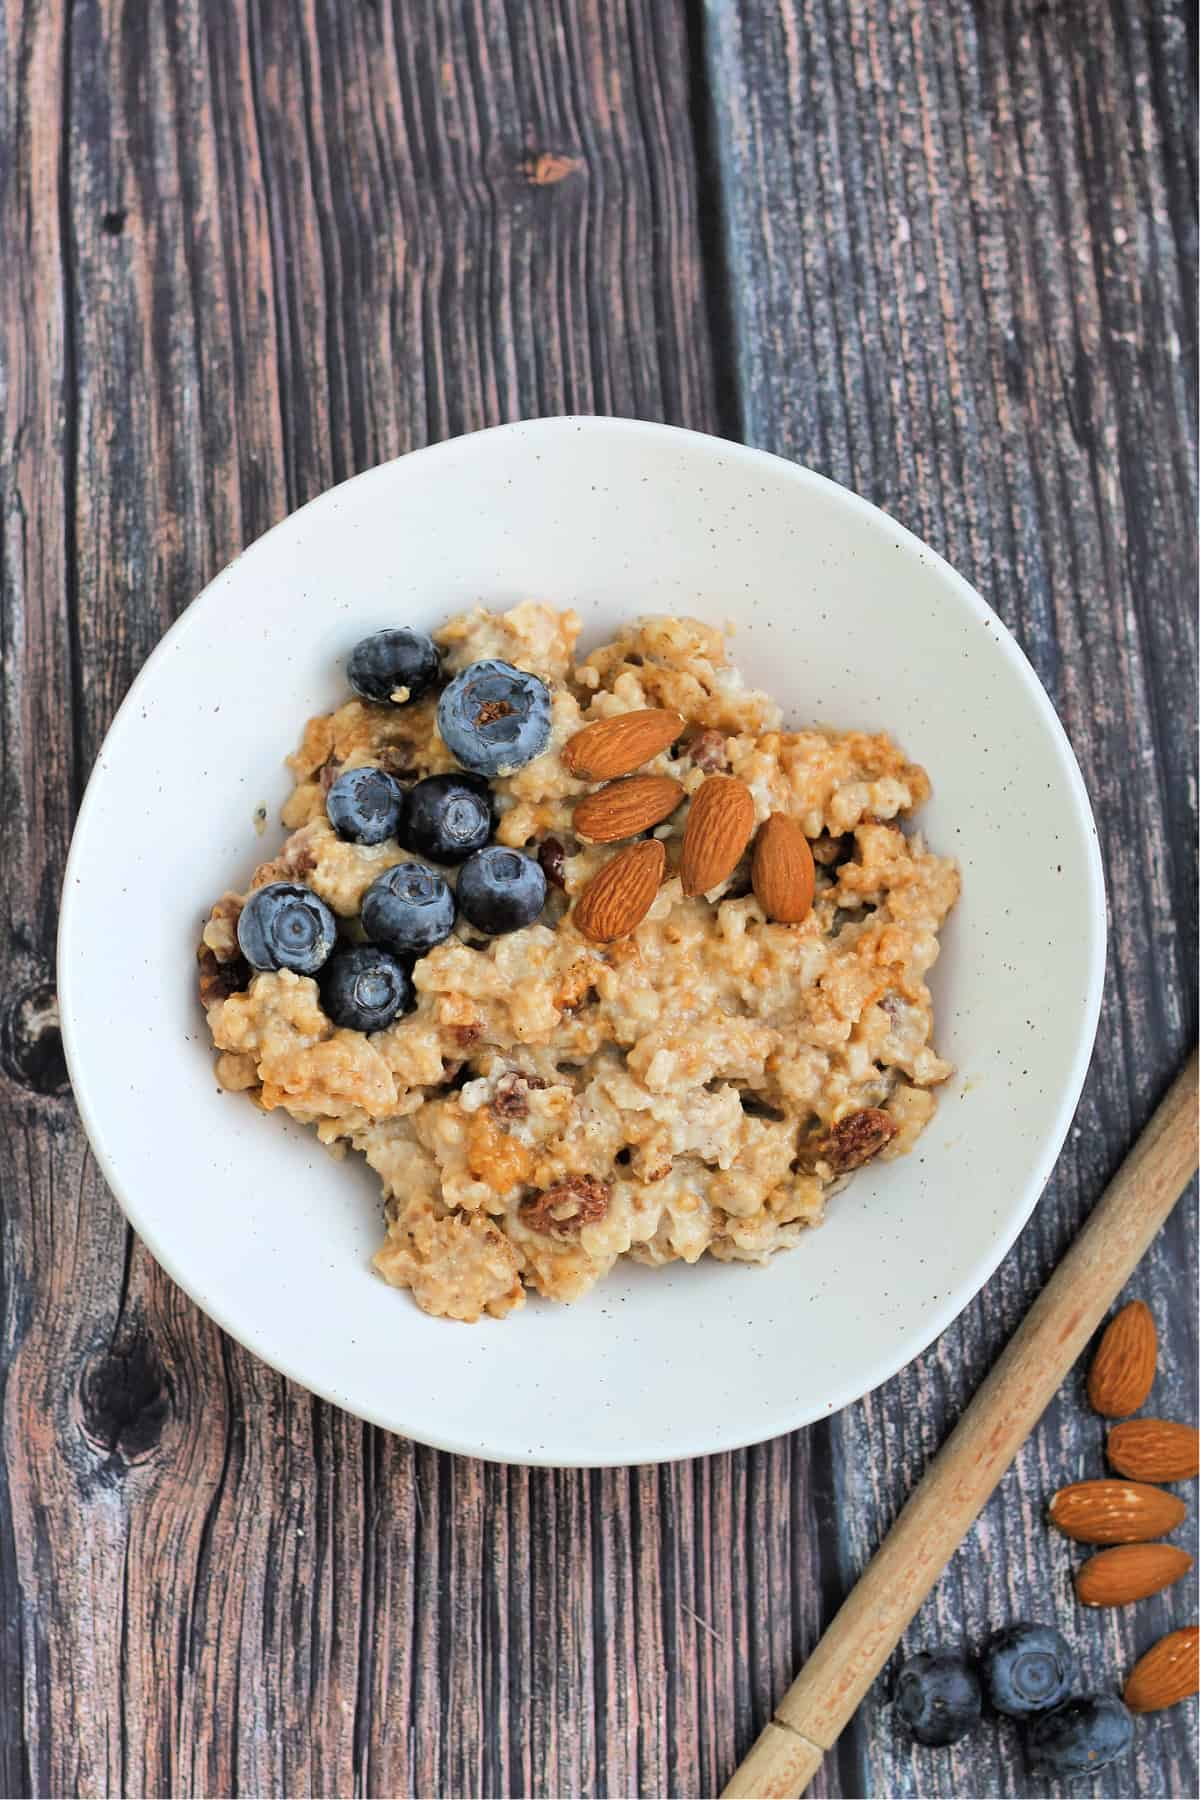 A white bowl of porridge/oatmeal with almonds and blueberries on top.